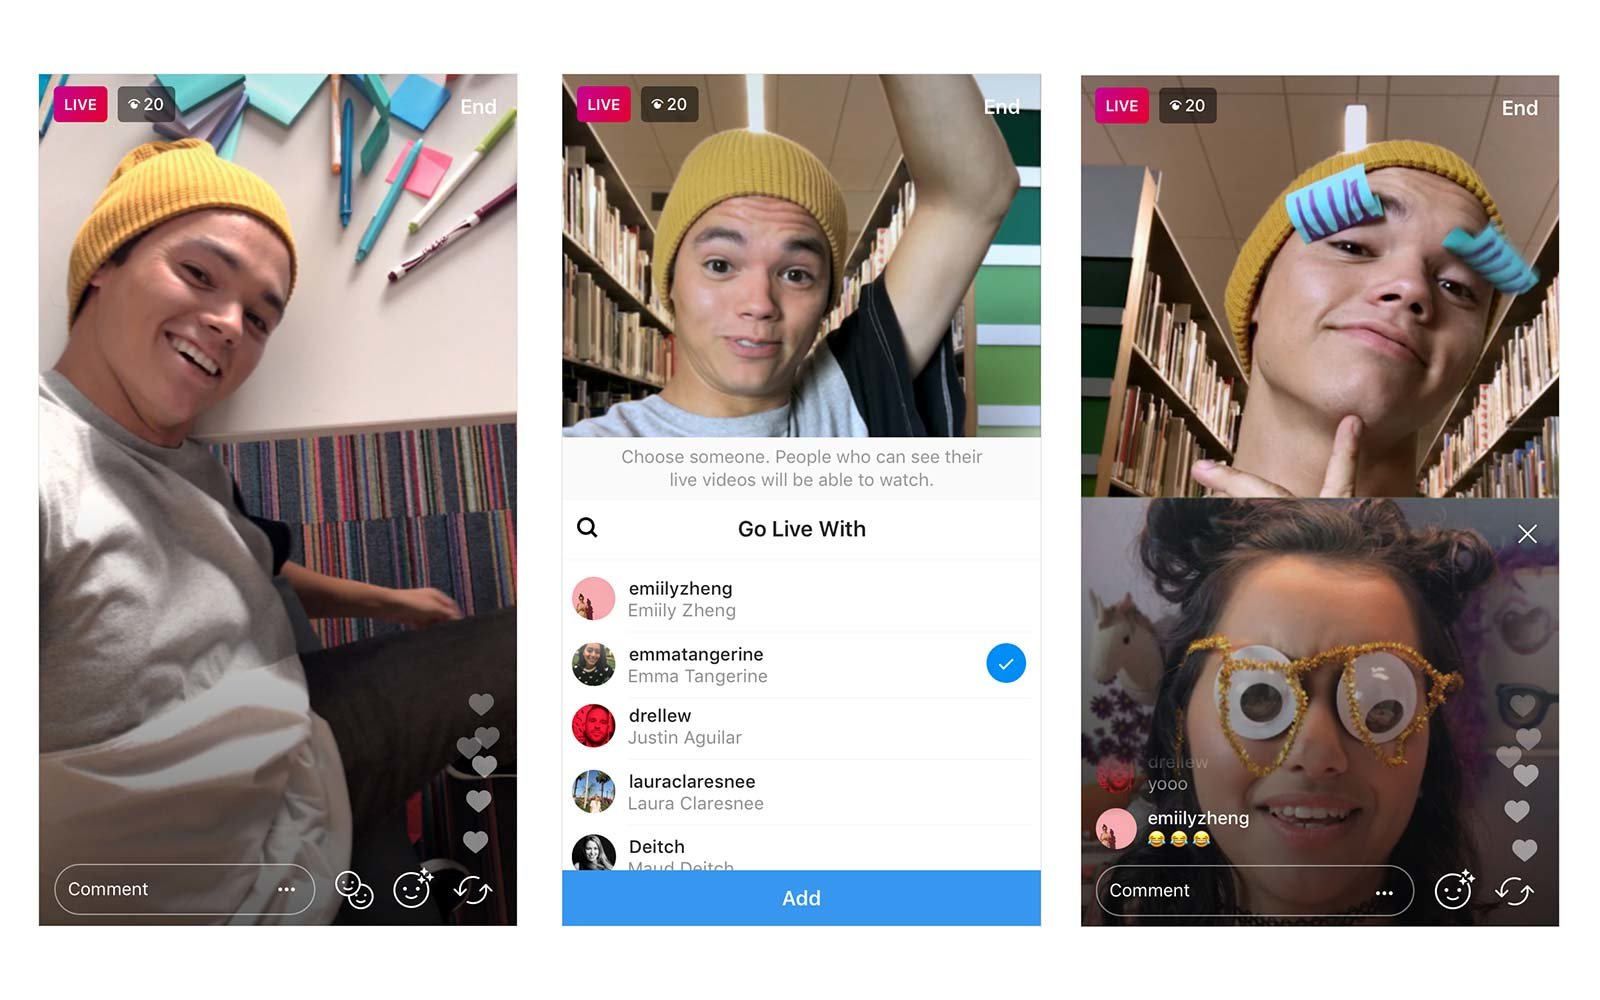 Instagram Users Can Now Go Live With A Friend